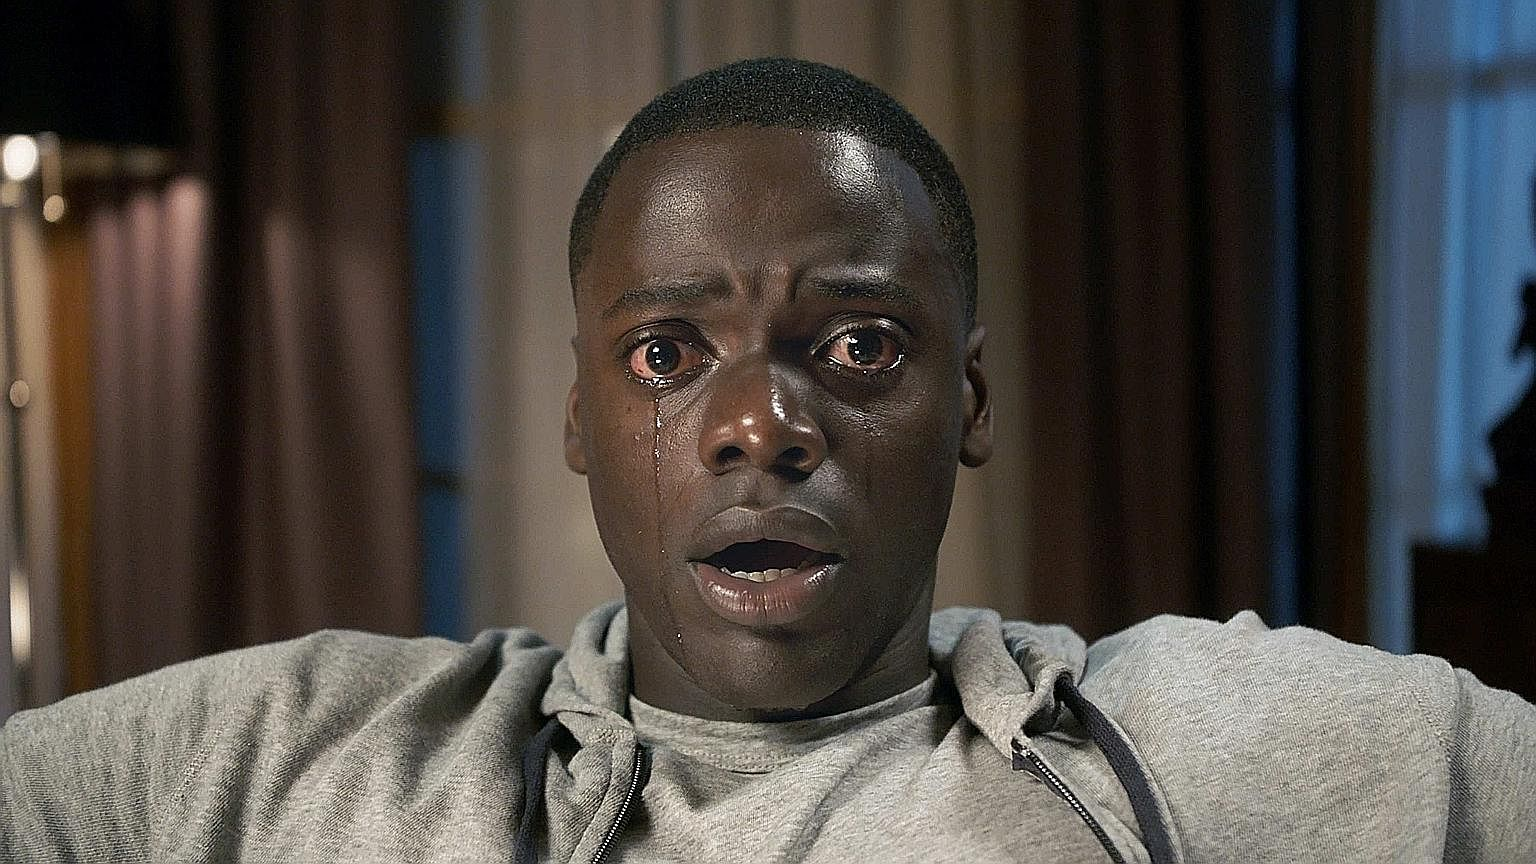 Daniel Kaluuya plays a man whose life takes a horrific turn after visiting his white girlfriend's liberal parents in the thriller, Get Out.